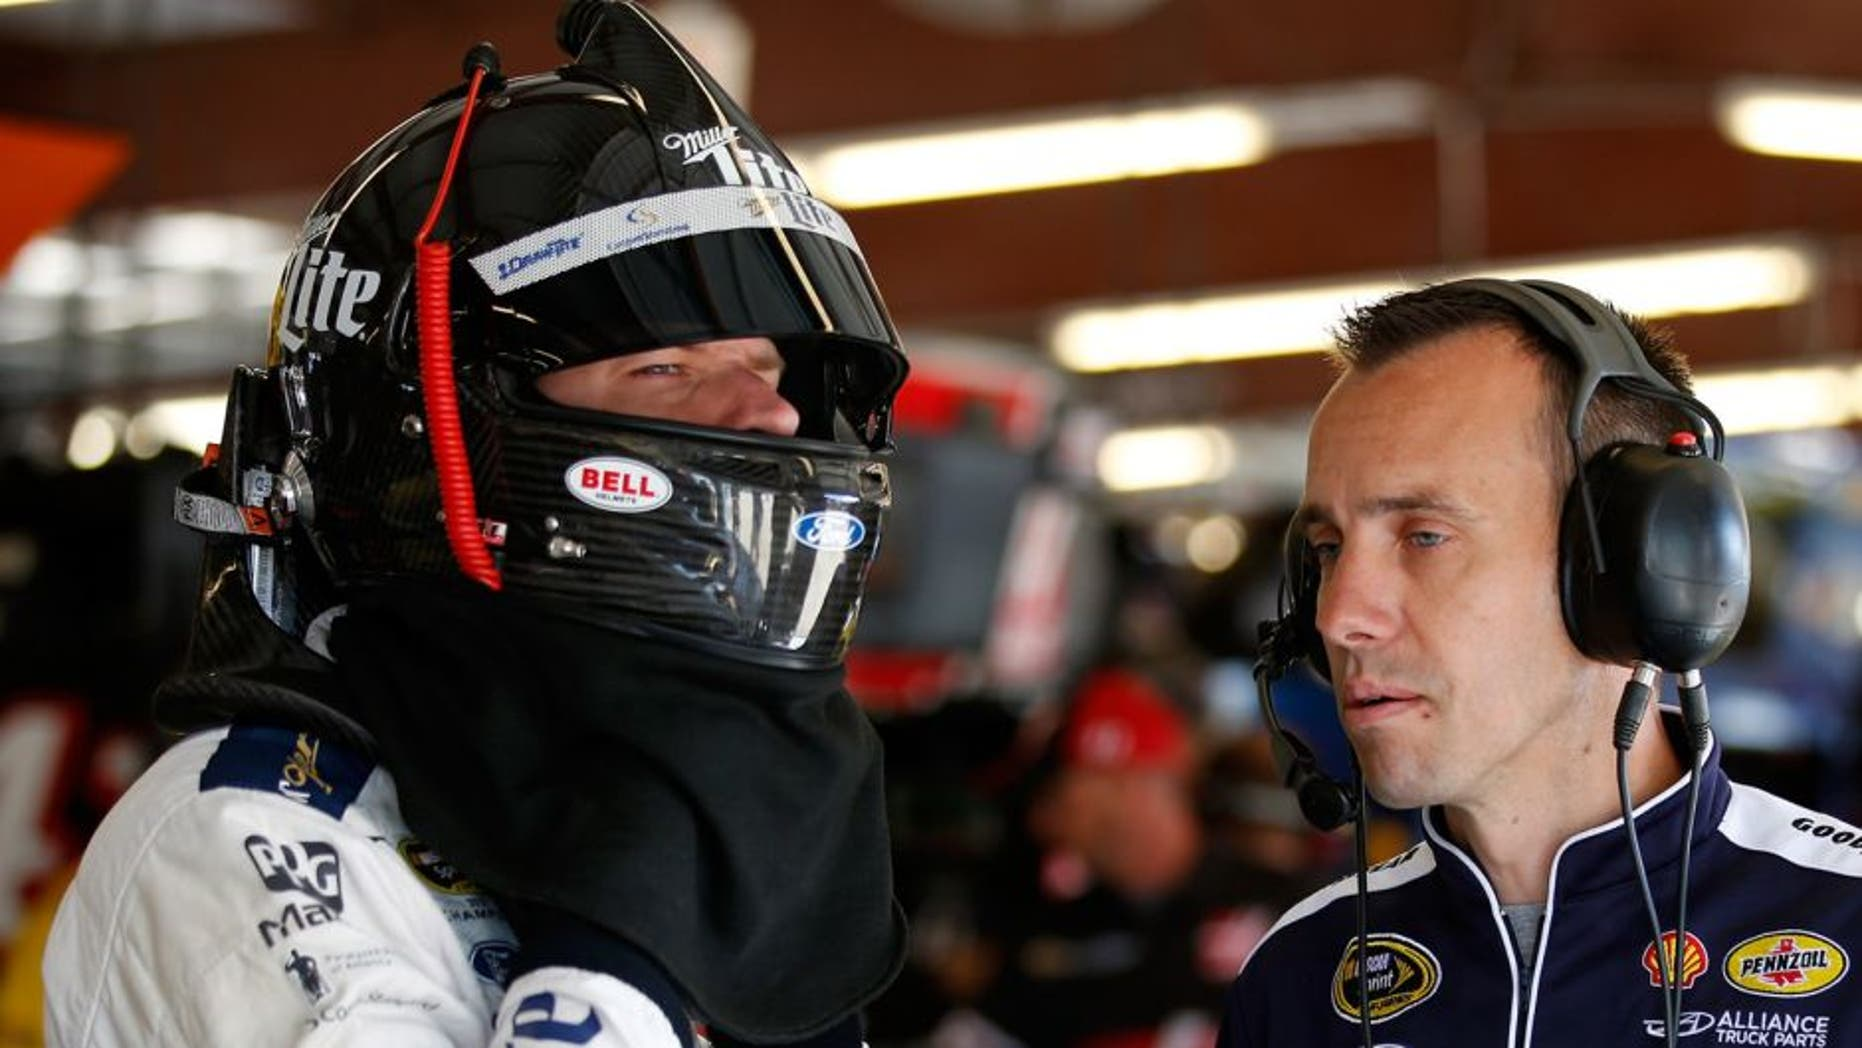 JOLIET, IL - SEPTEMBER 19: Brad Keselowski, driver of the #2 Miller Lite Ford, talks with his crew chief Paul Wolfe during practice for the NASCAR Sprint Cup Series MyAFibRisk.com 400 at Chicagoland Speedway on September 19, 2015 in Joliet, Illinois. (Photo by Todd Warshaw/NASCAR via Getty Images)